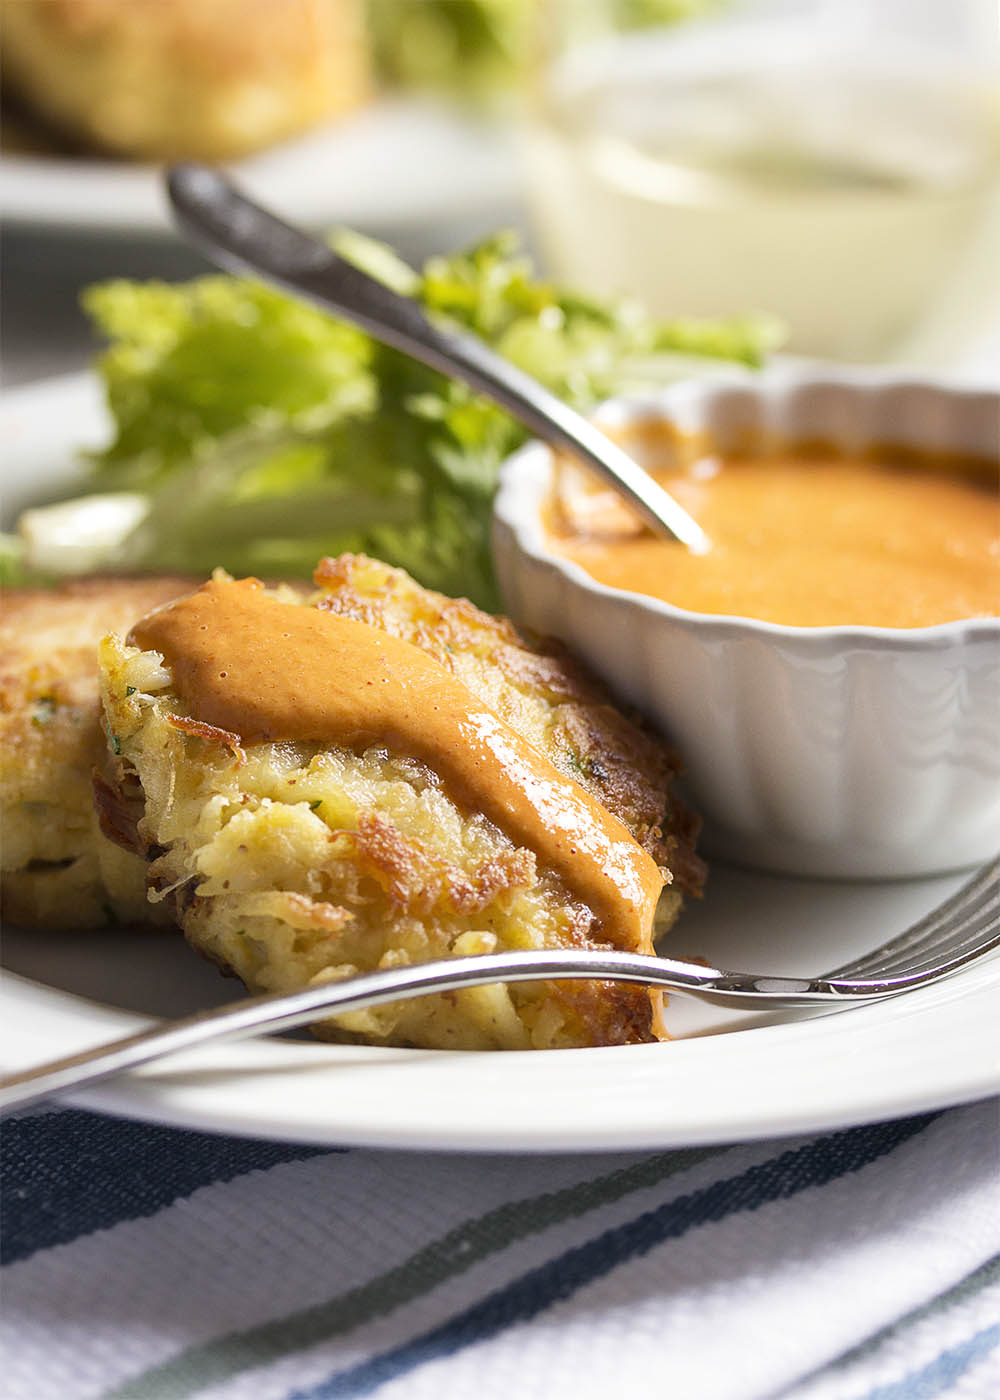 Crab Cakes with Creamy Roasted Red Pepper Sauce - Crab cakes take on Spanish flavors with these paprika spiced cakes which are served alongside a tangy roasted red pepper and cream sauce. | justalittlebitofbacon.com